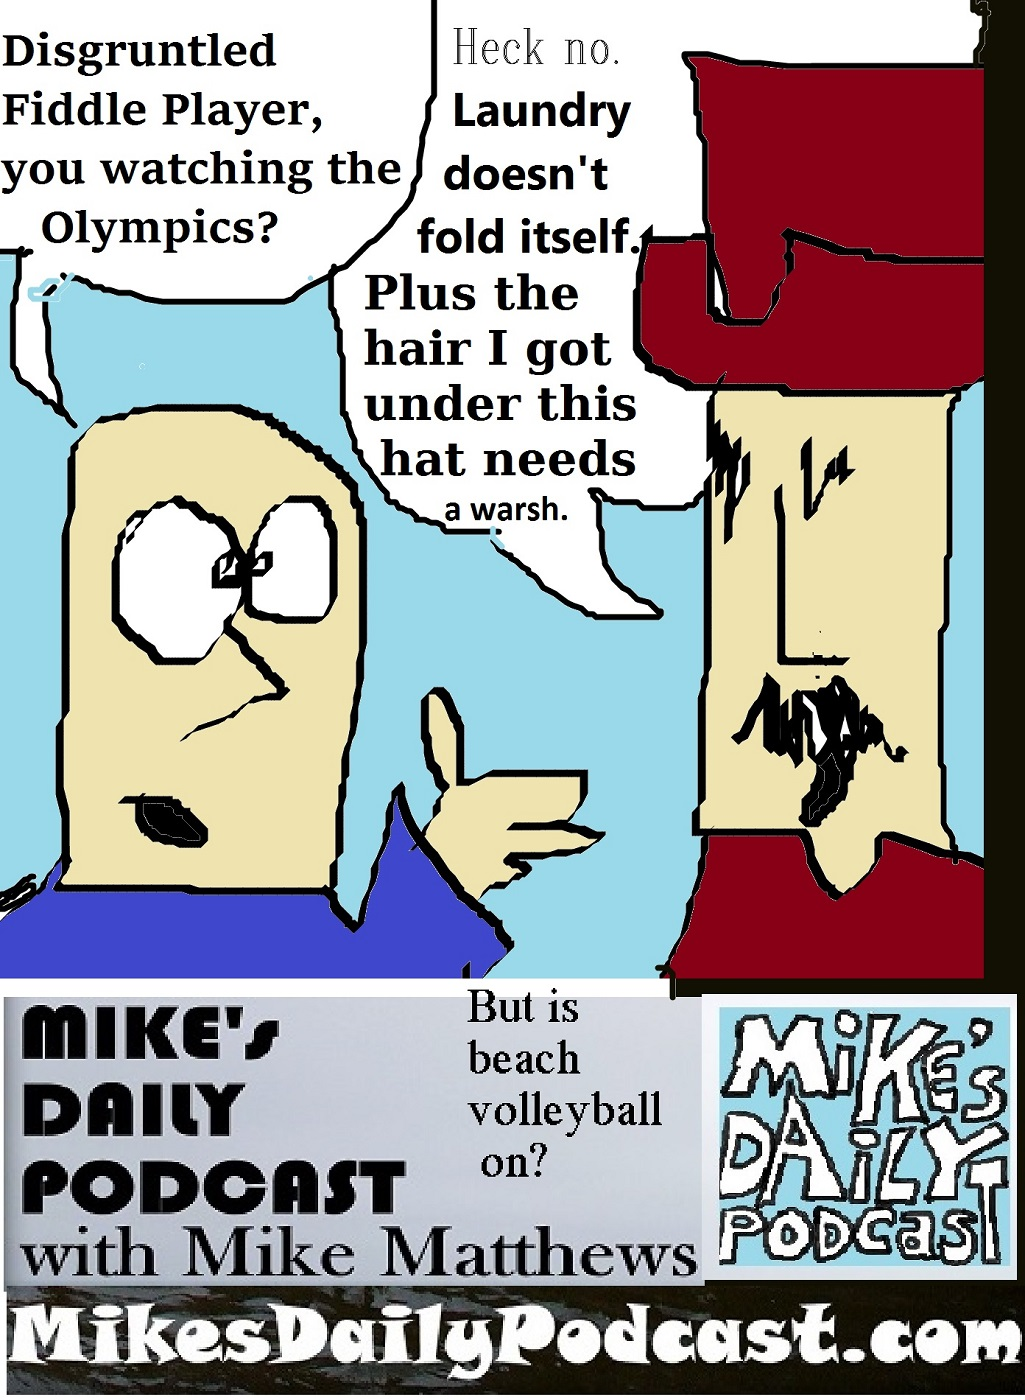 MIKEs DAILY PODCAST 1146 Disgruntled Fiddle Player olympics